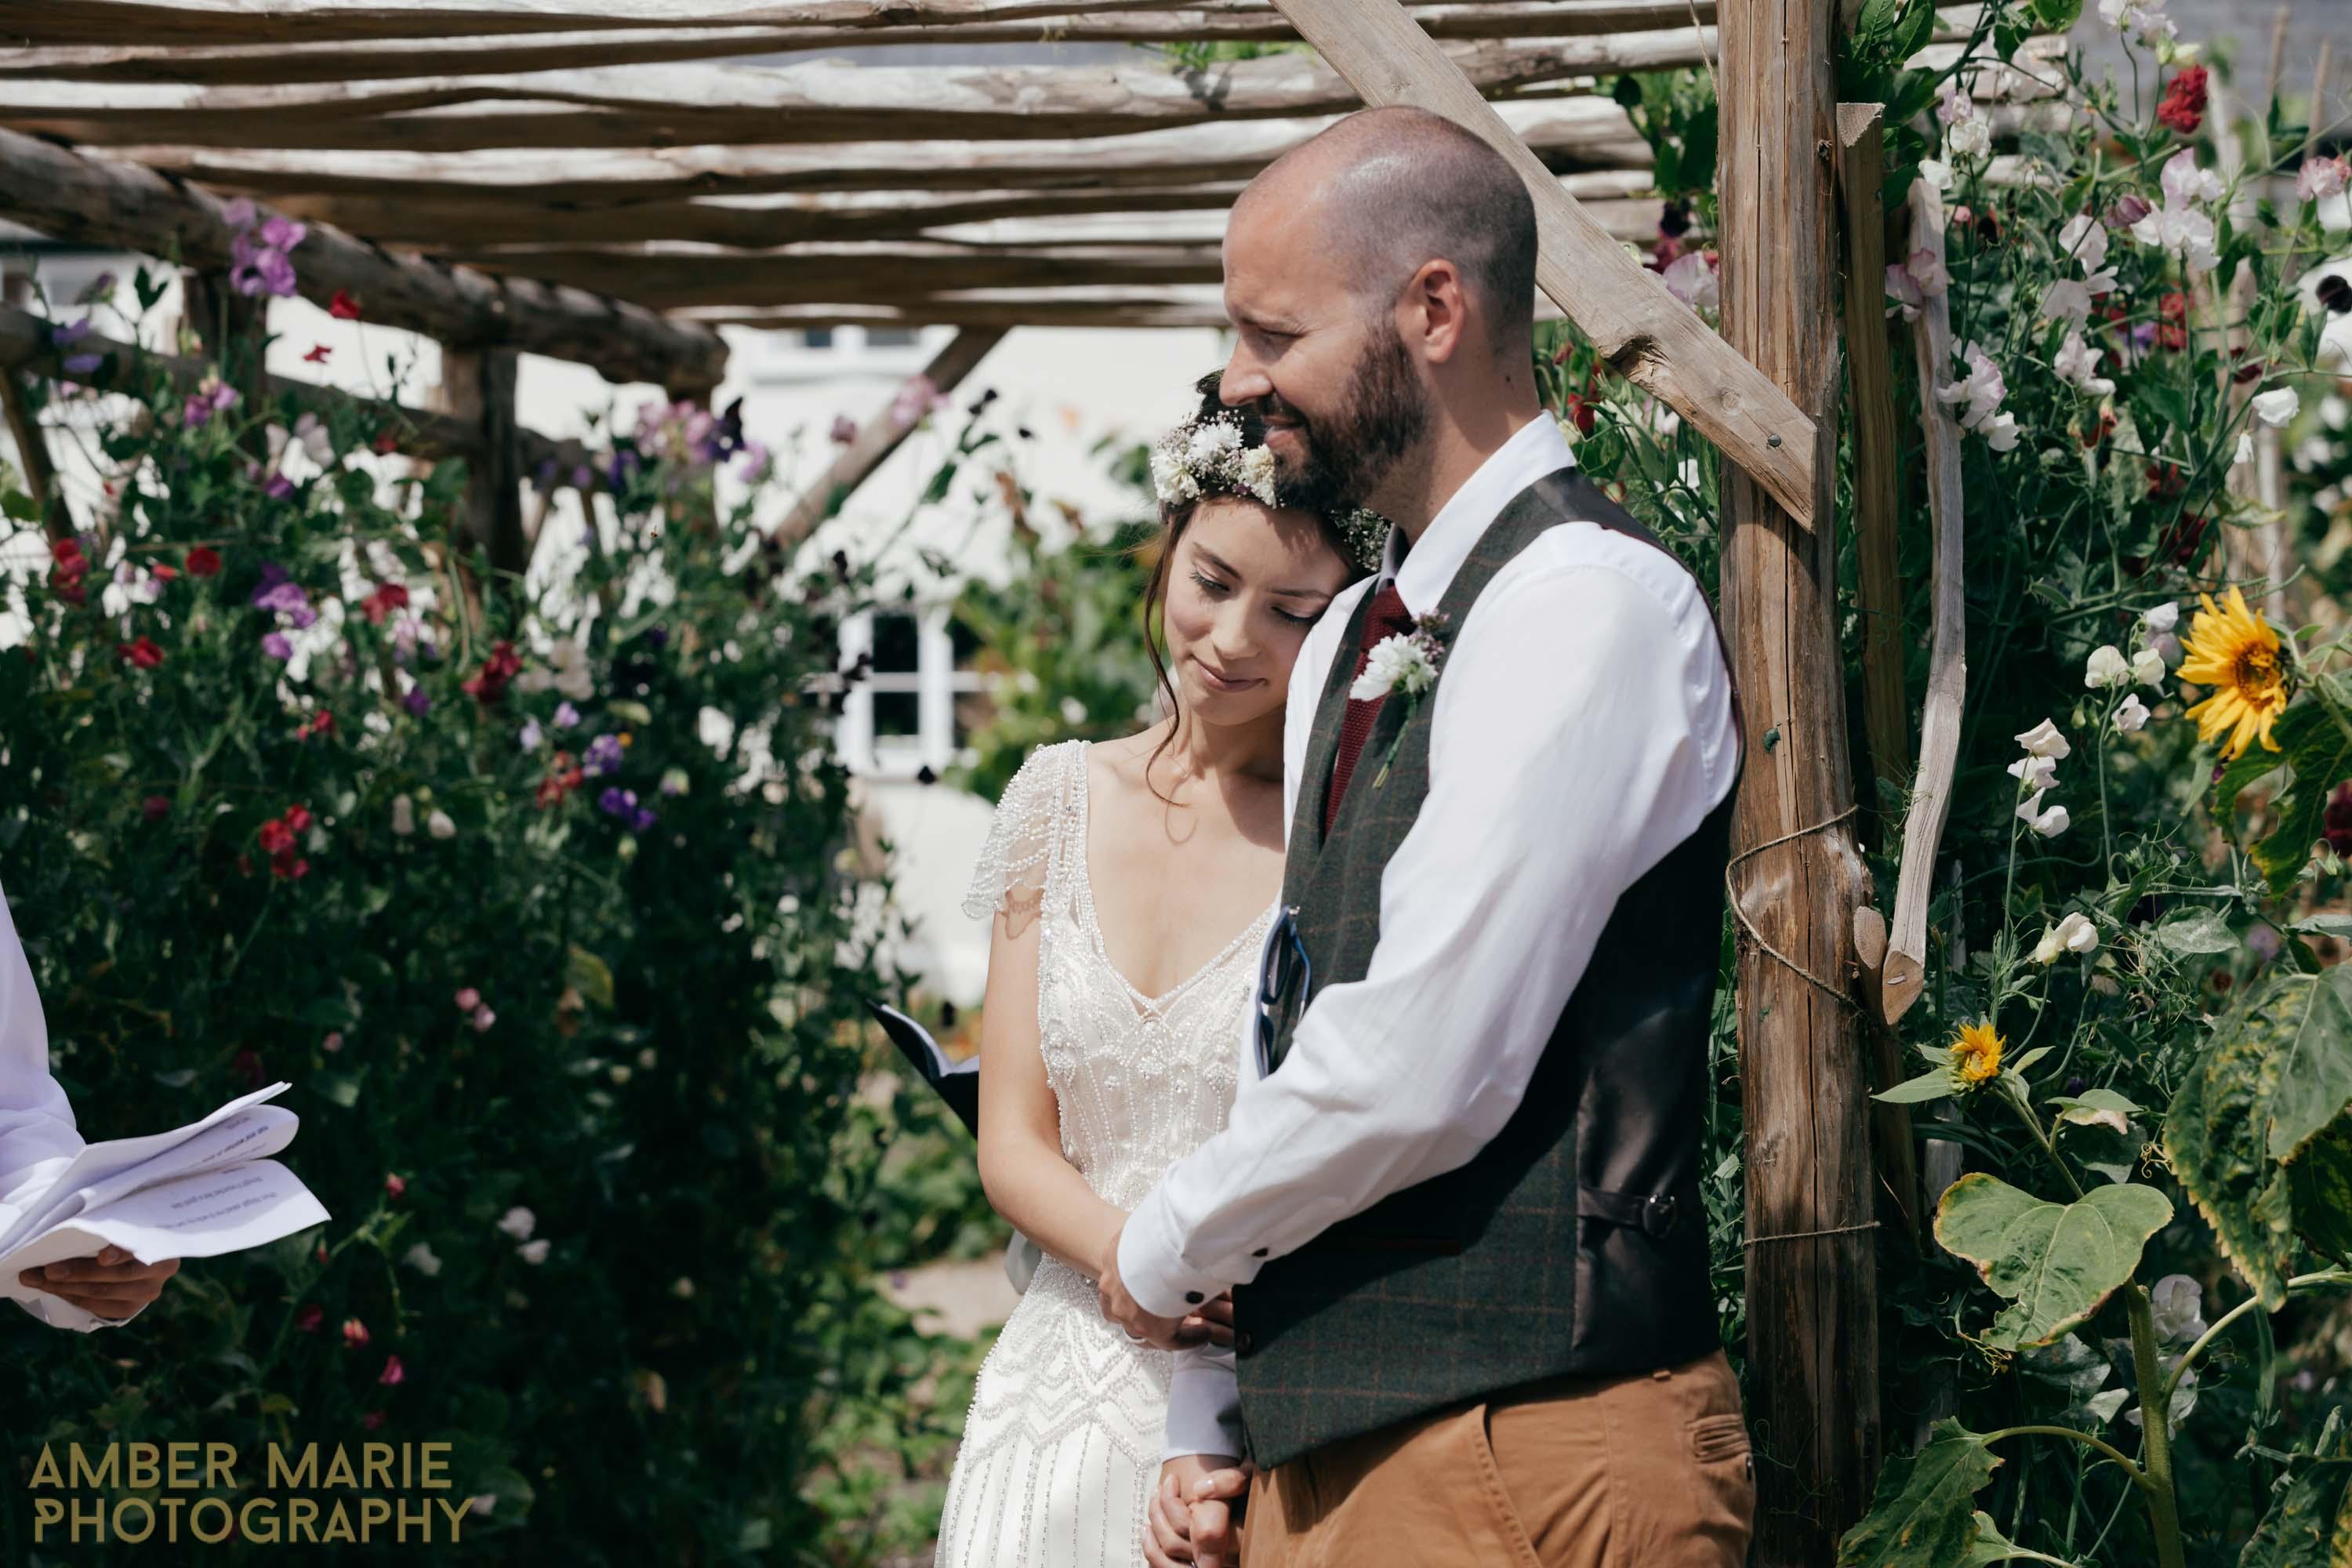 River cottage creative natural creative wedding photography